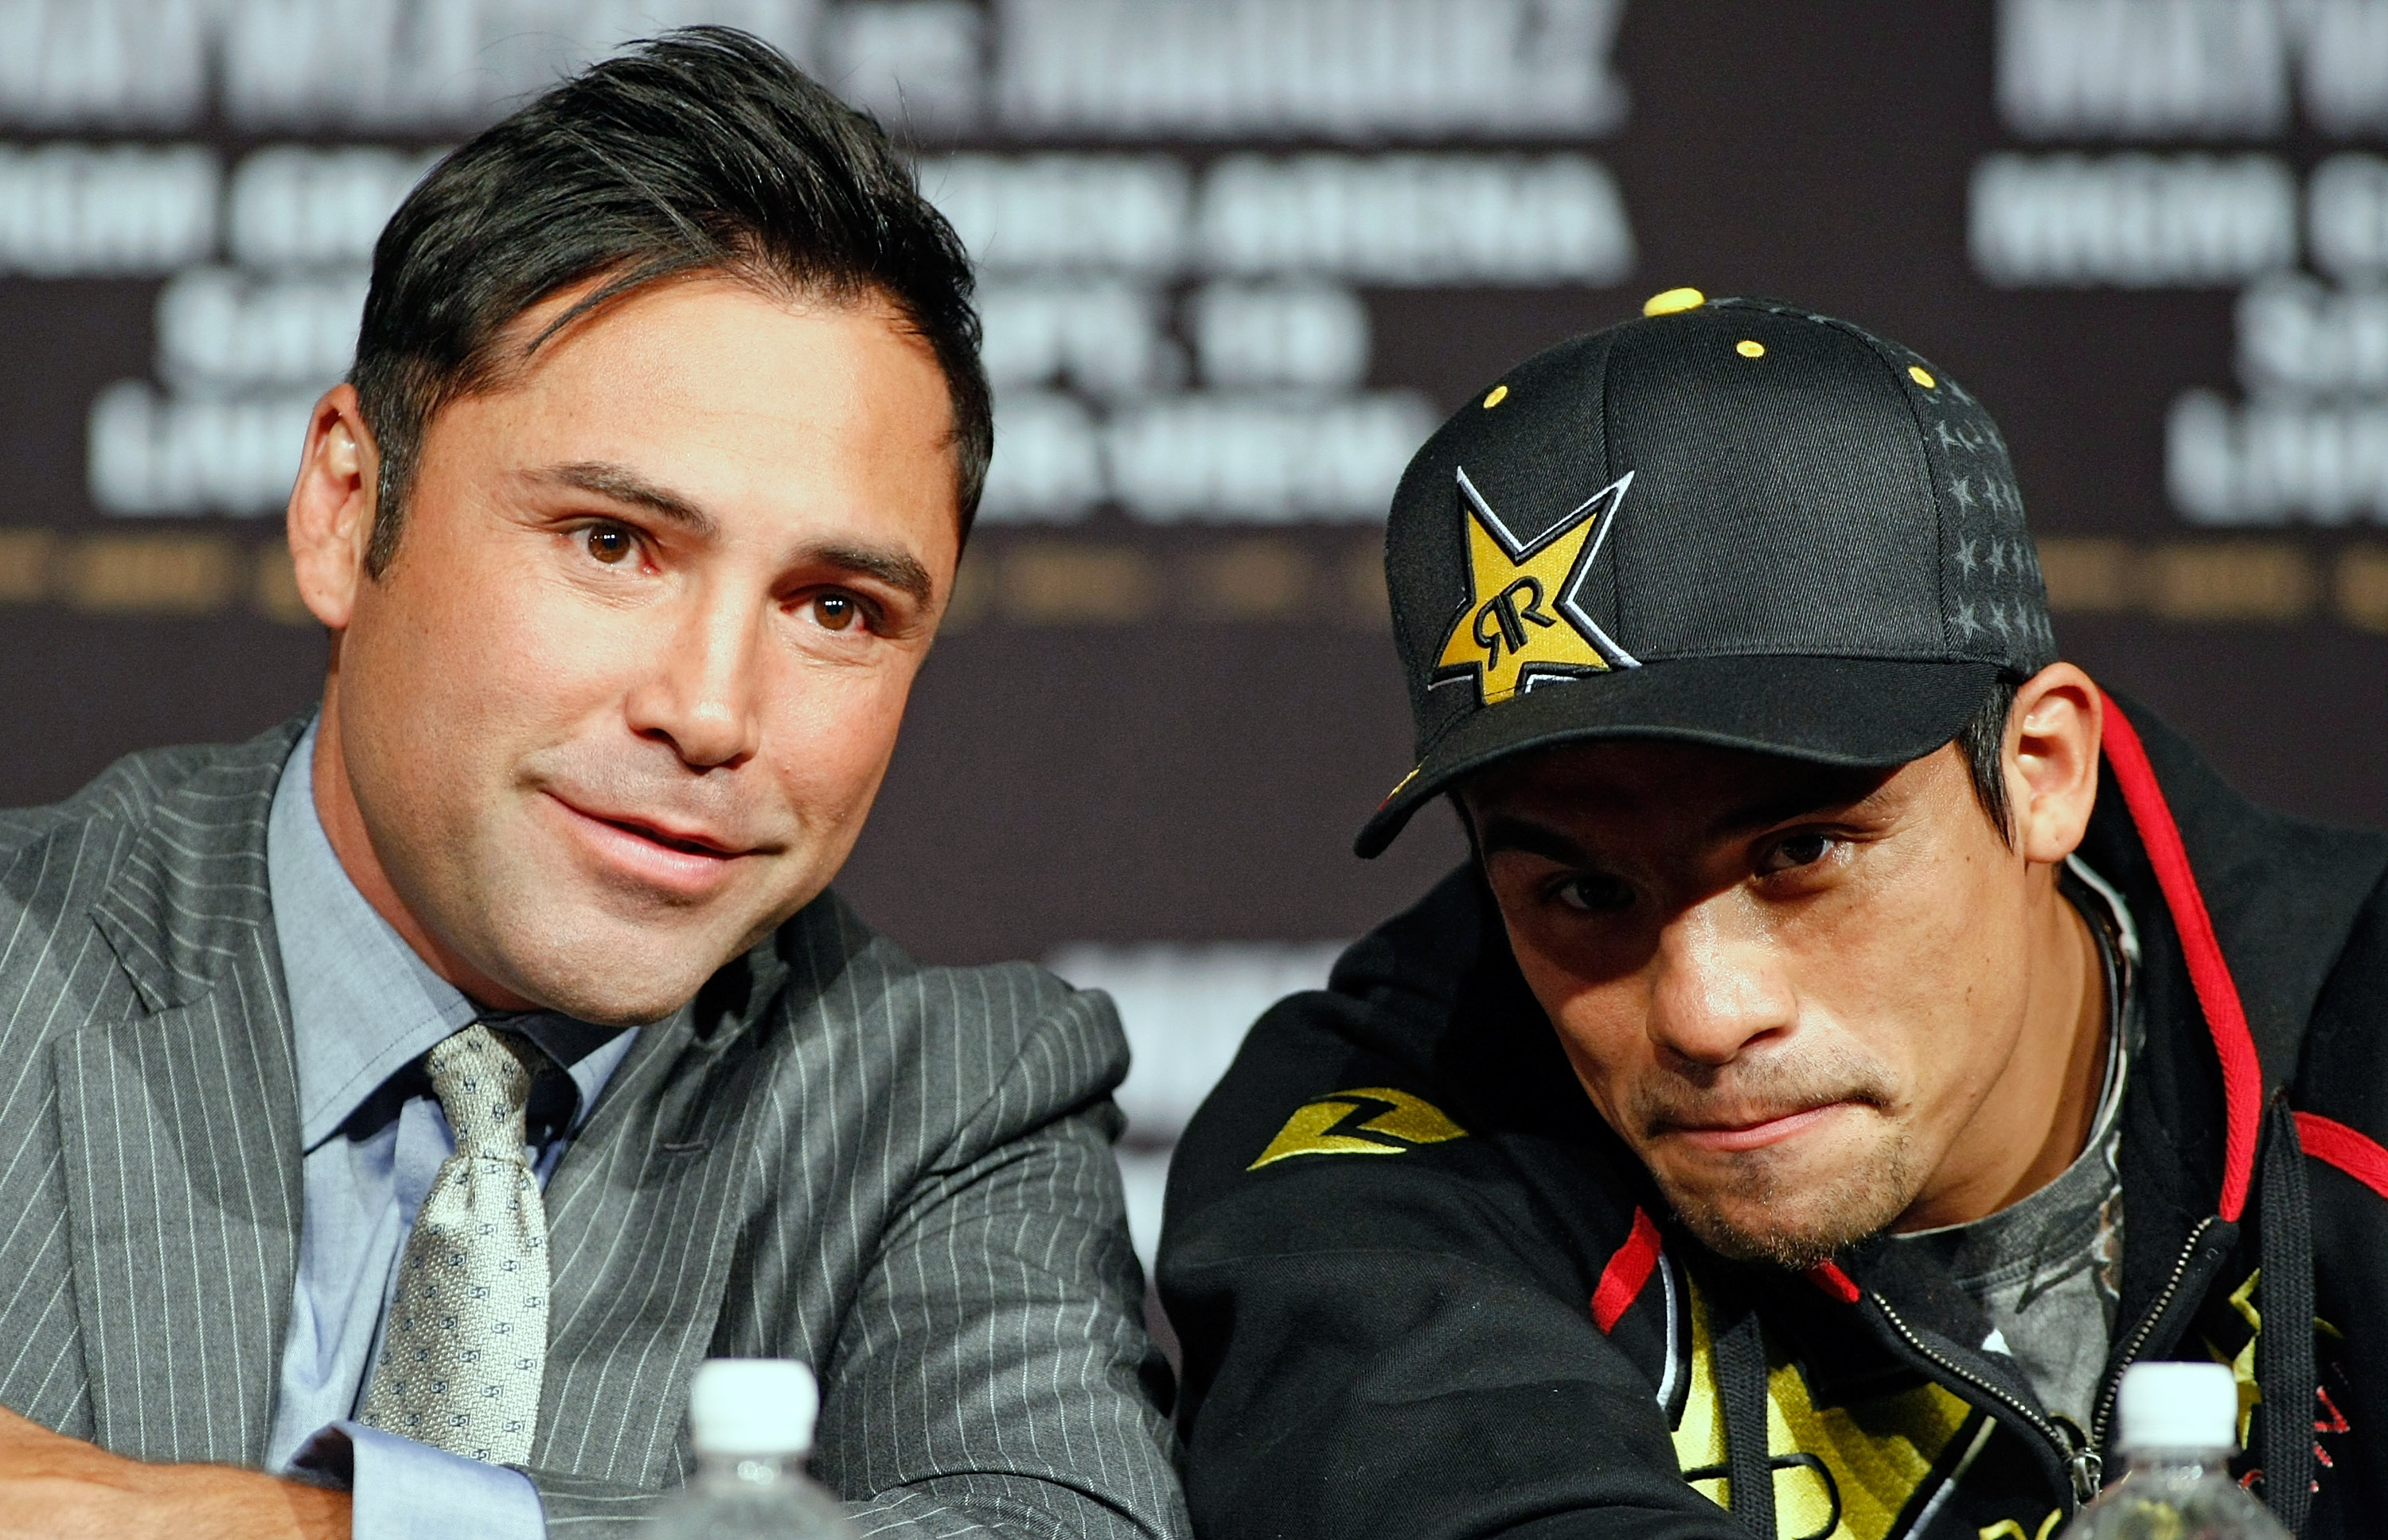 LAS VEGAS - SEPTEMBER 16:  Boxing promoter Oscar De La Hoya (L) and Juan Manuel Marquez appear during the final news conference for Marquez' bout against Floyd Mayweather Jr. at the MGM Grand Hotel/Casino September 16, 2009 in Las Vegas, Nevada. Marquez a